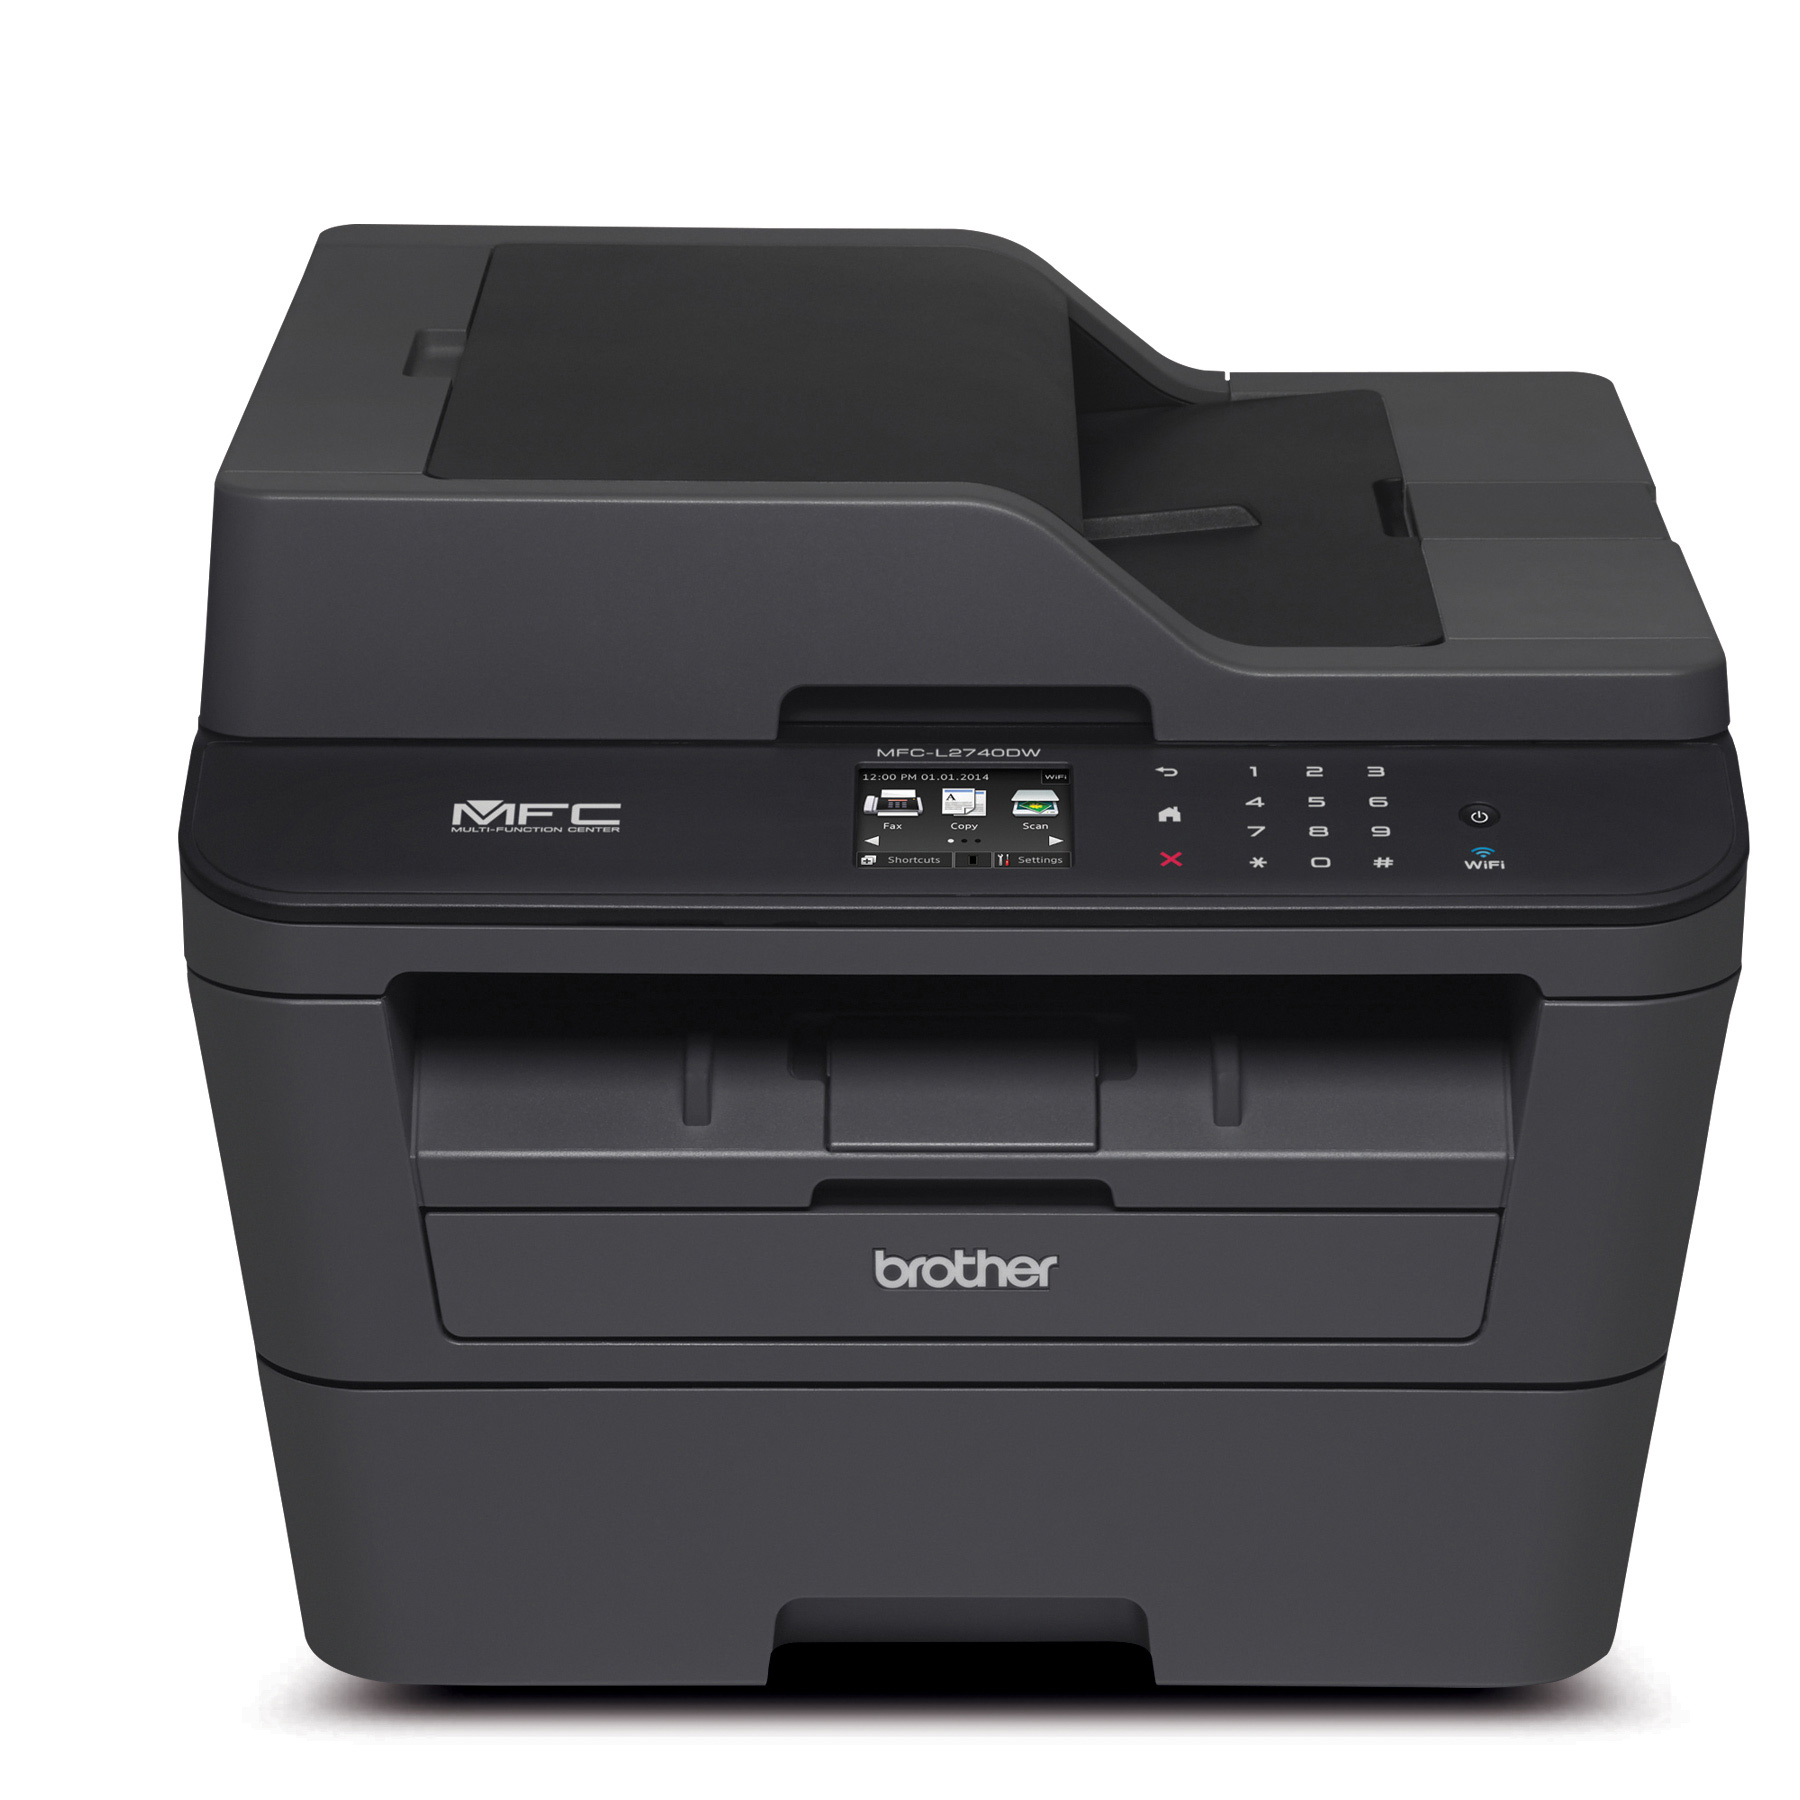 Brother MFC-L2740DW All-in-One Monochrome Laser Printer